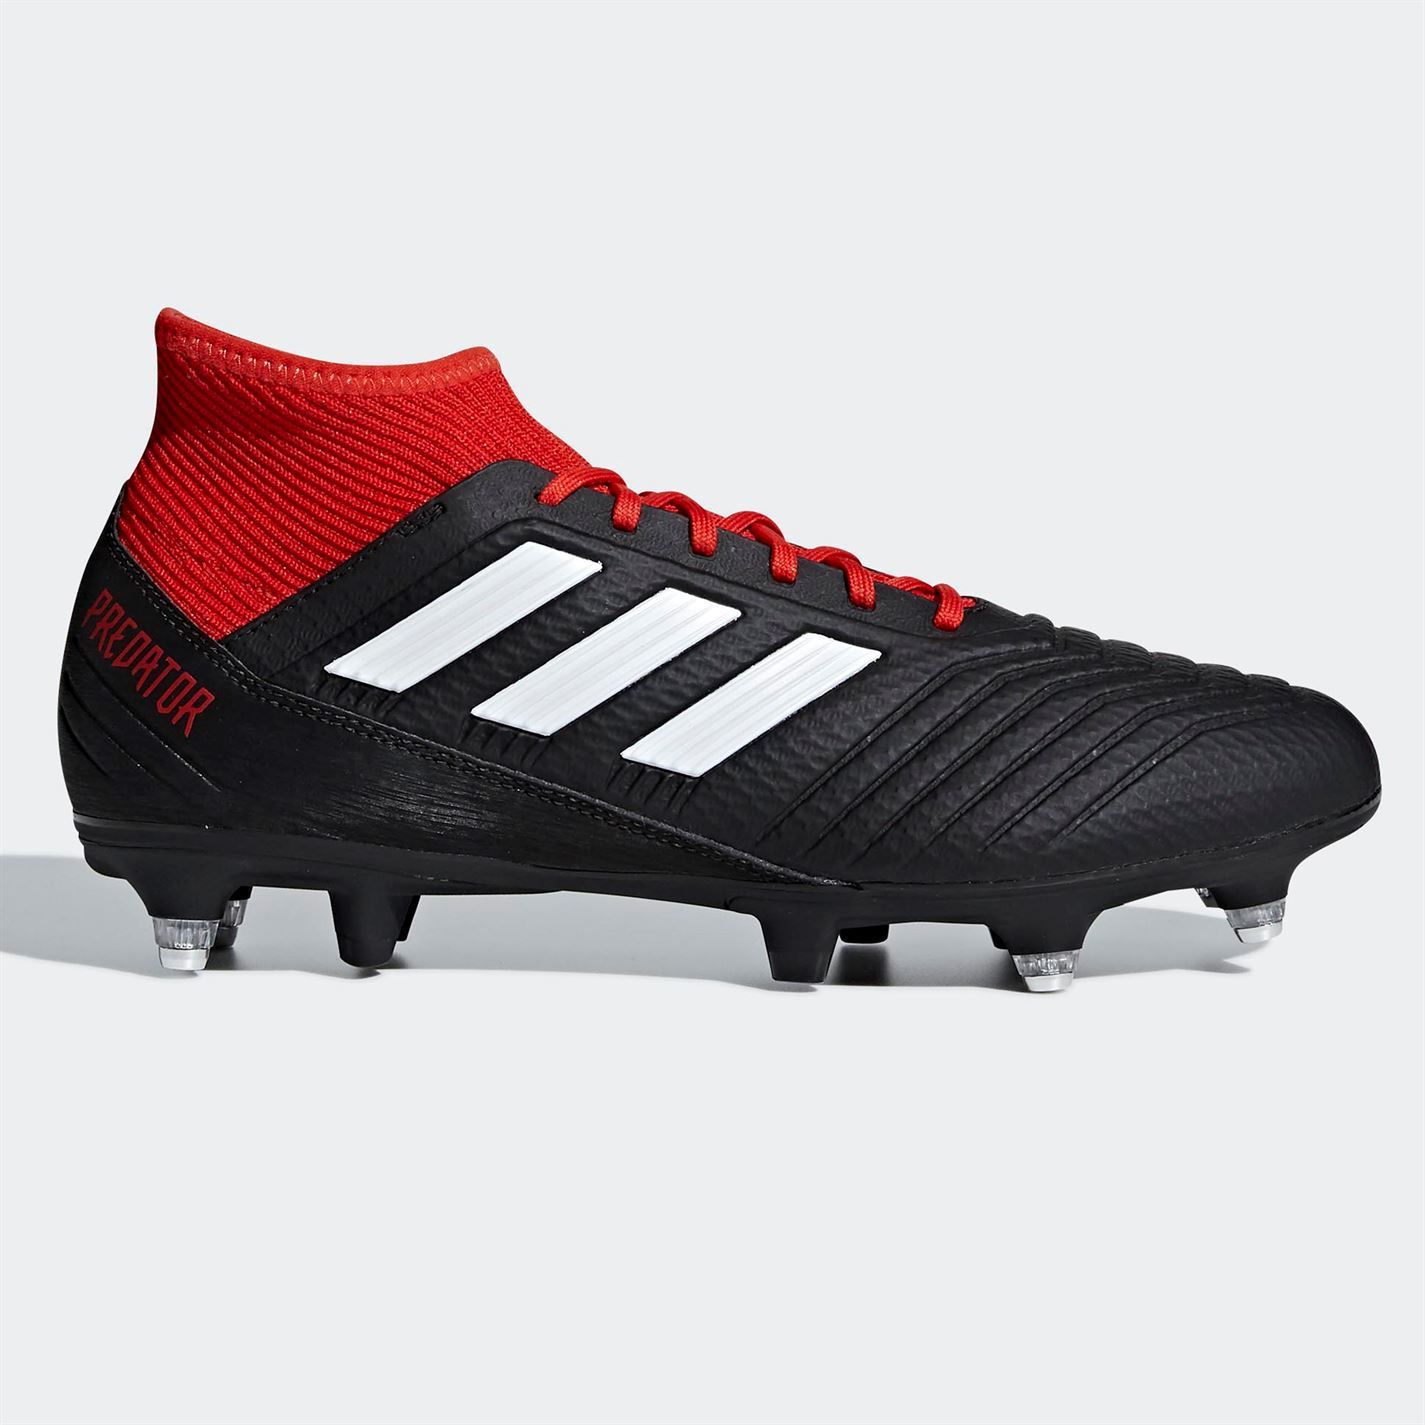 e4d5efee44f8 ... adidas predator 18.3 SG Soft Ground Football Boots Mens Soccer Shoes  Cleats